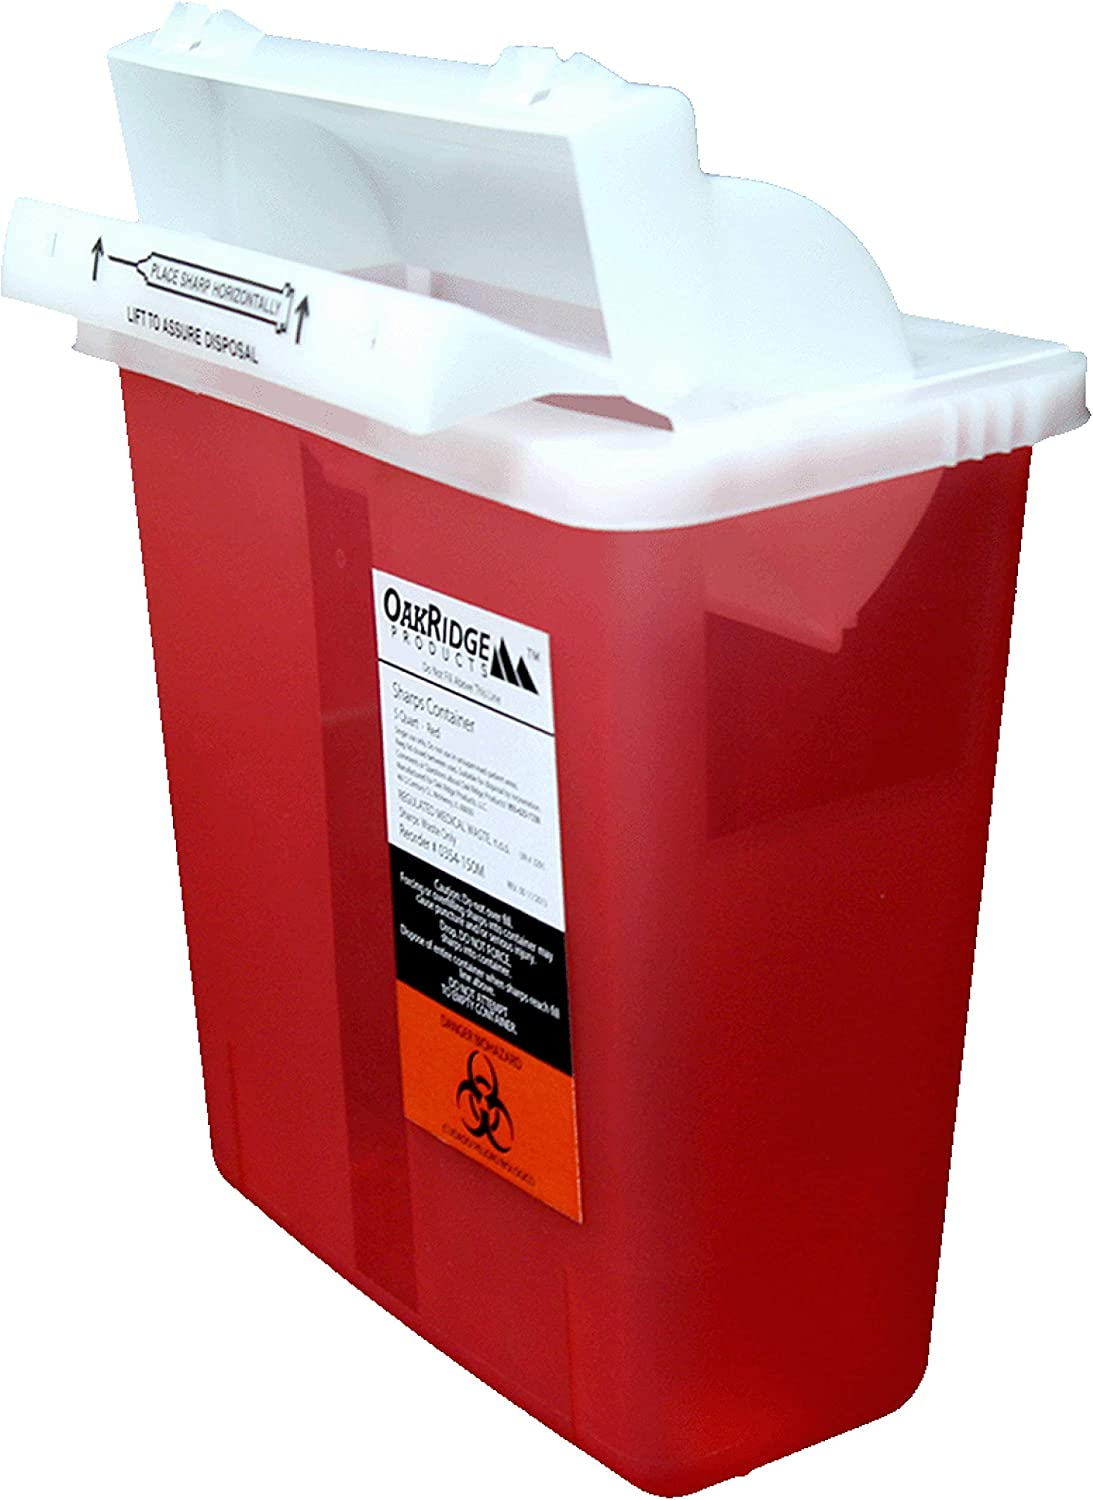 Oakridge 5 Quart Sharps Container 3 Fort Worth Mall B Special price for a limited time lid Mailbox Style Pack